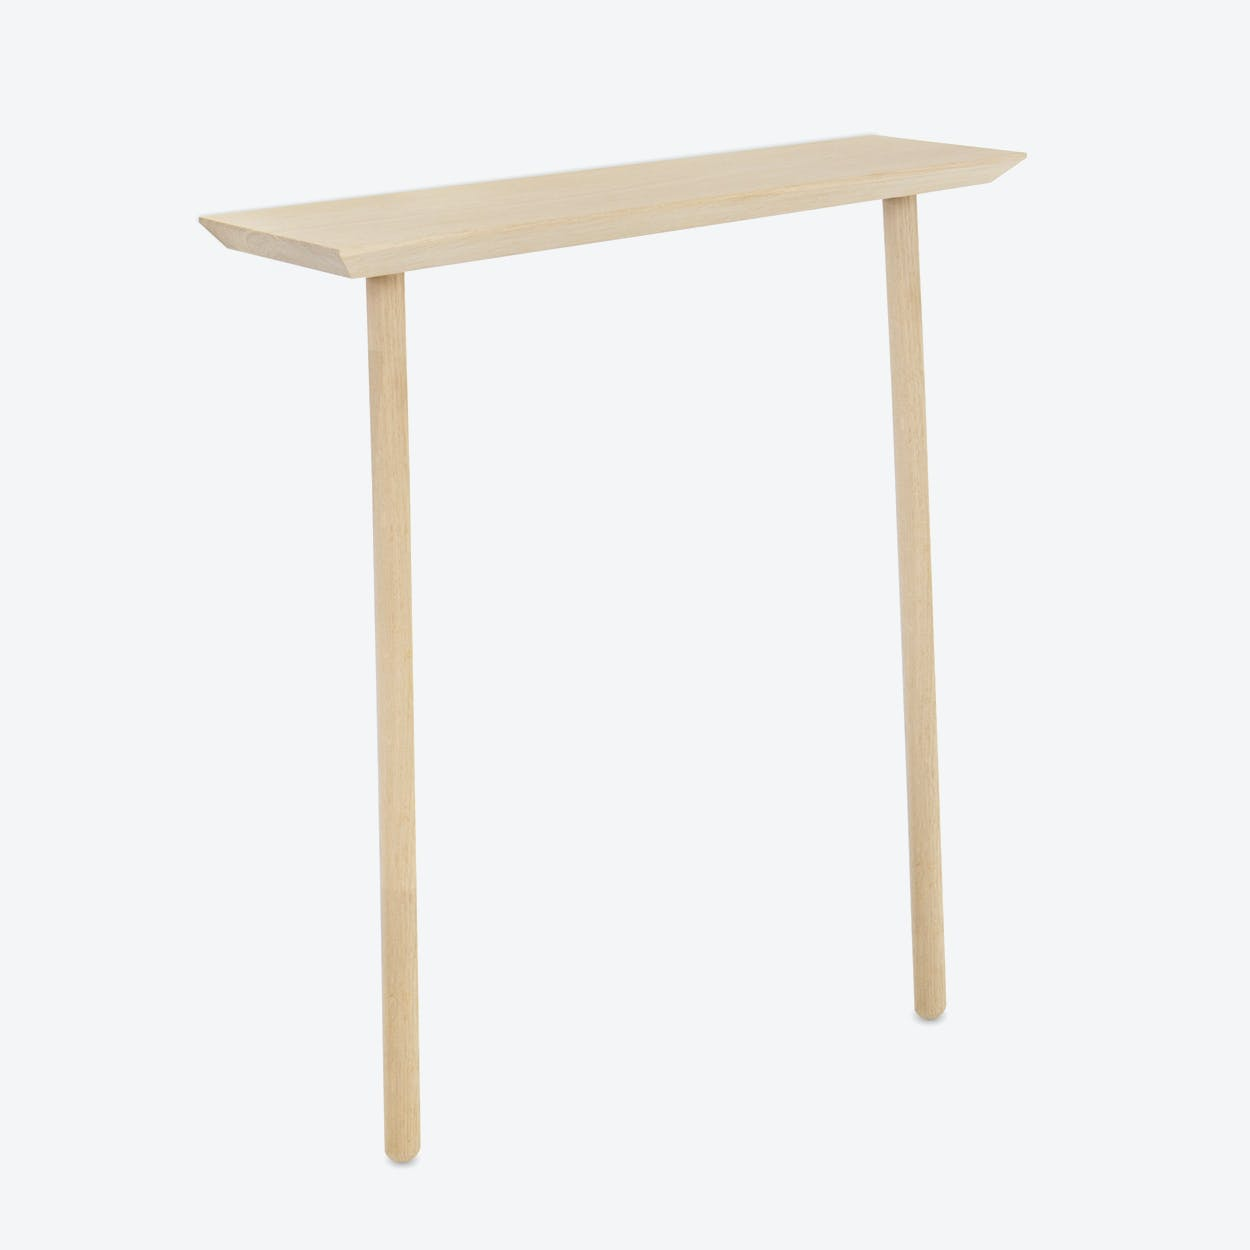 Hipsta Console in Natural Oak Wood Small